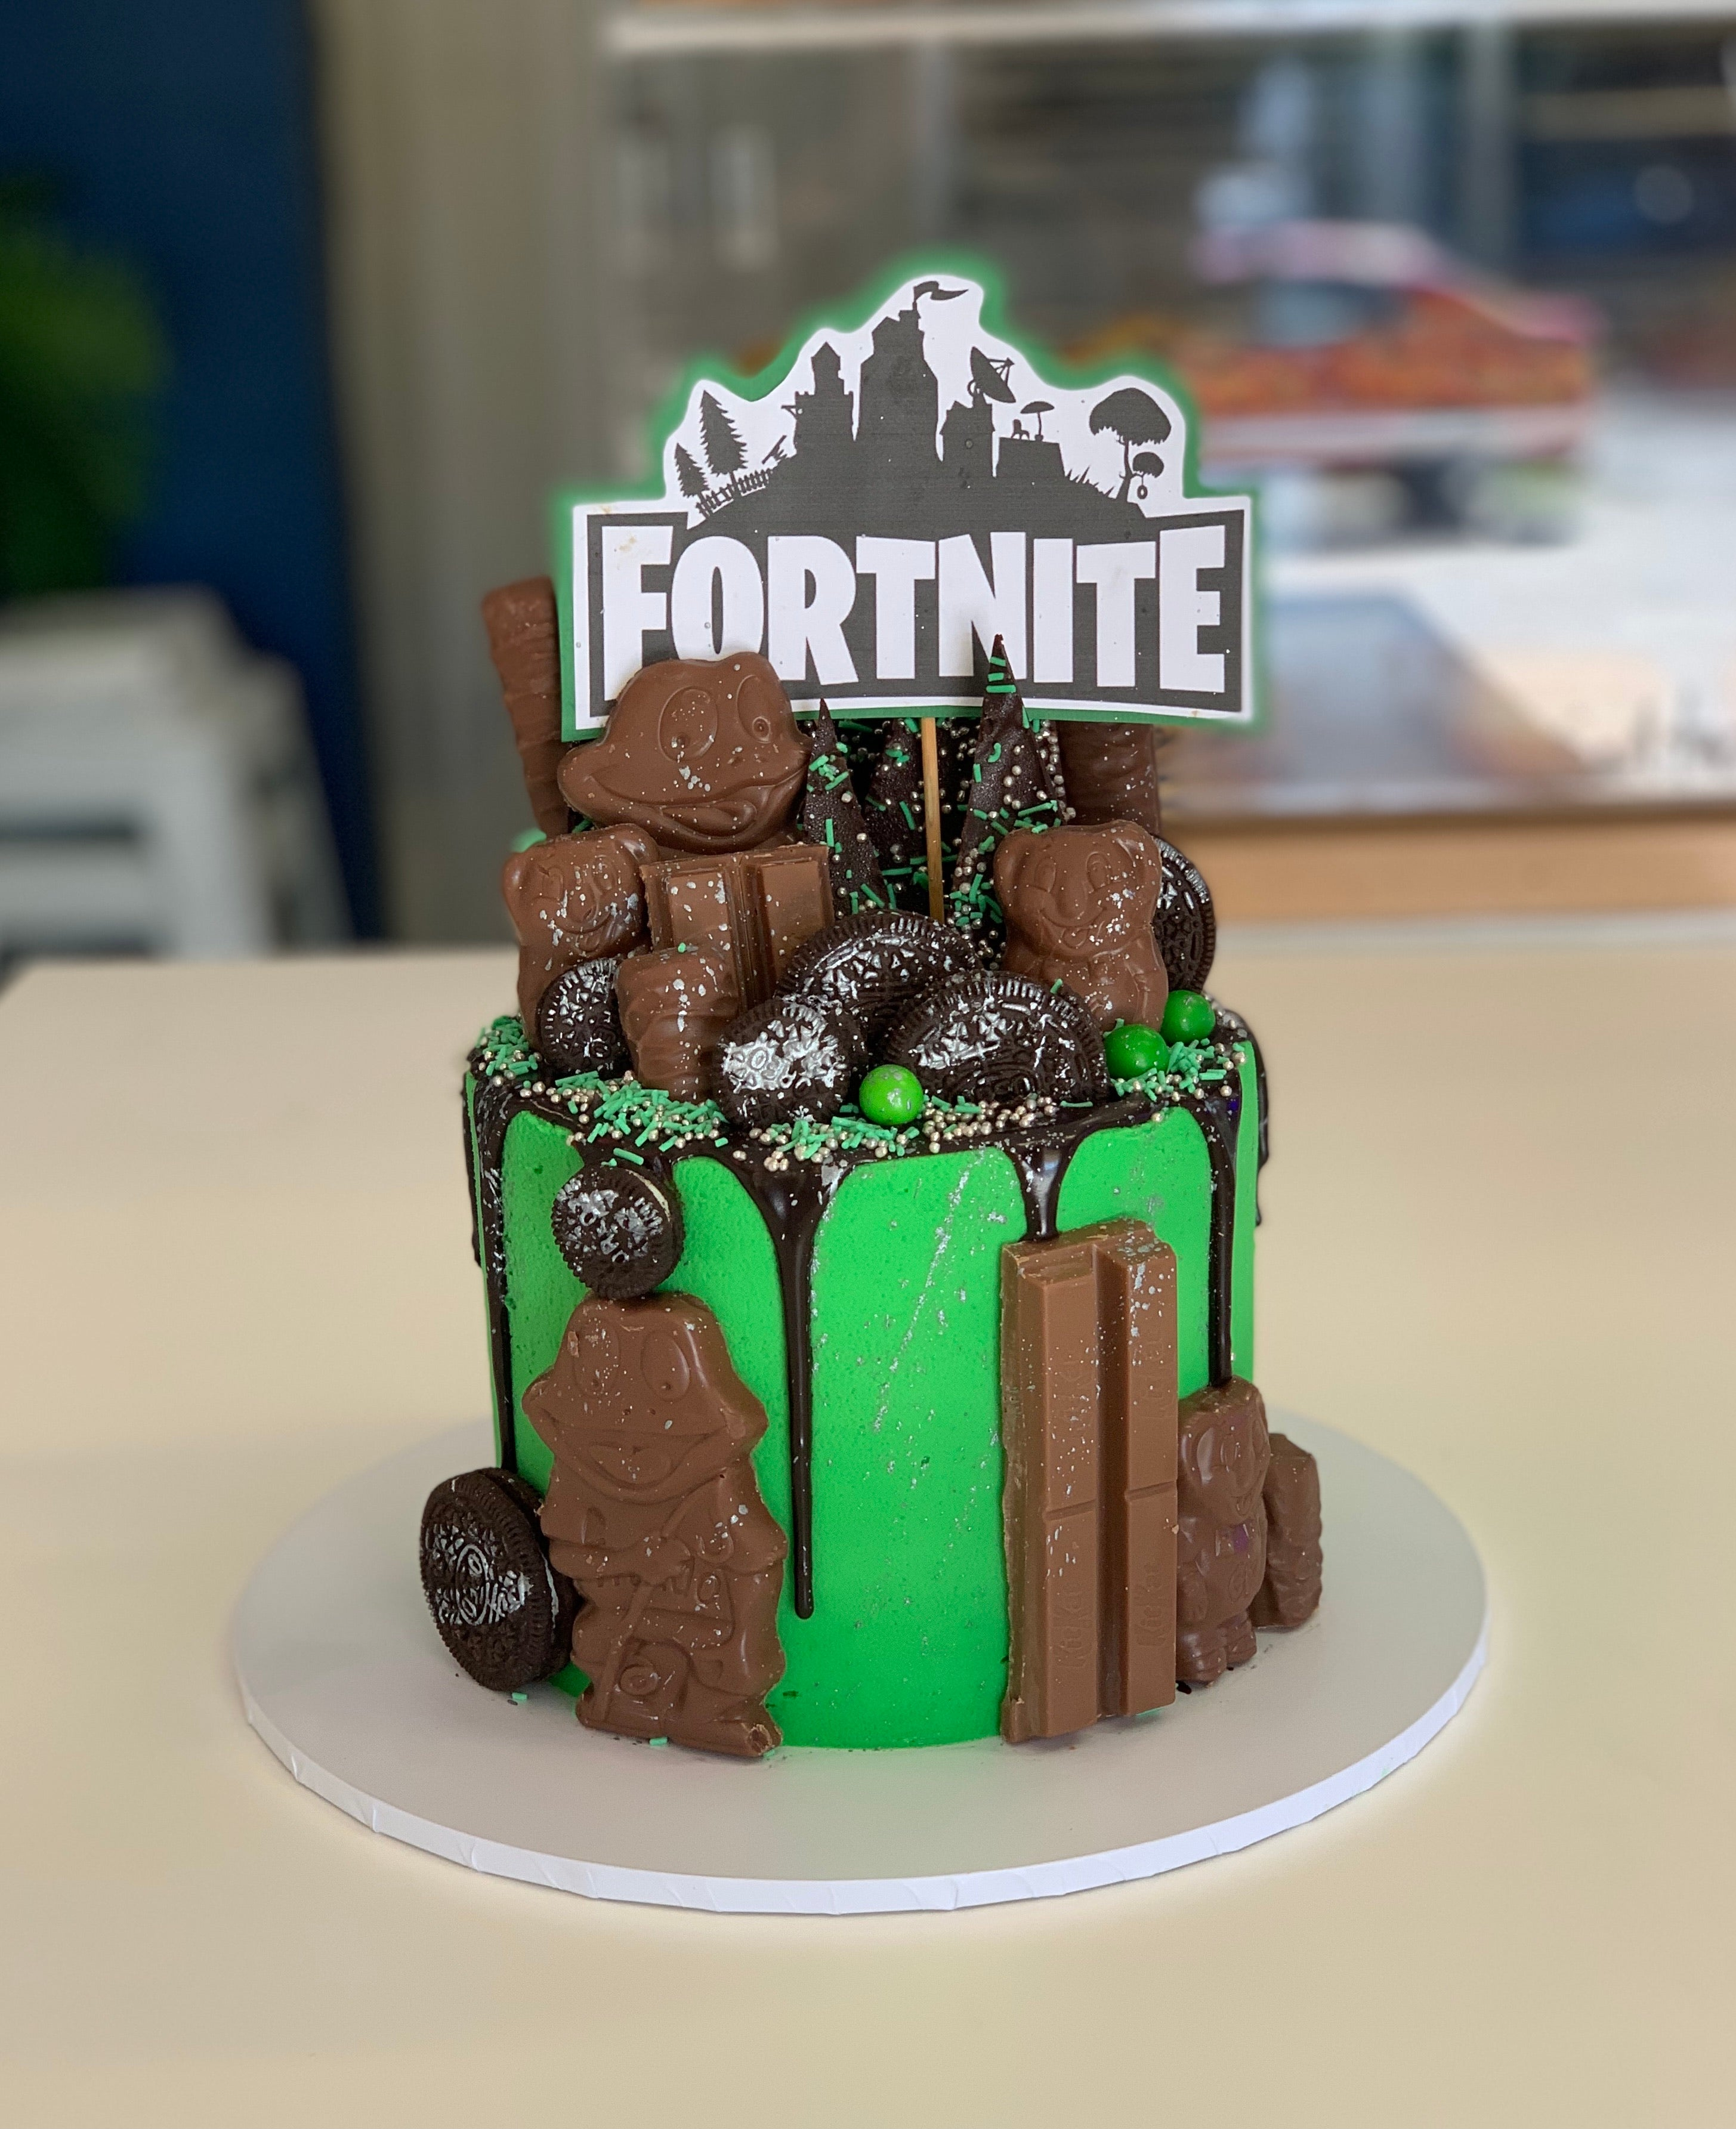 The Fortnite Cake